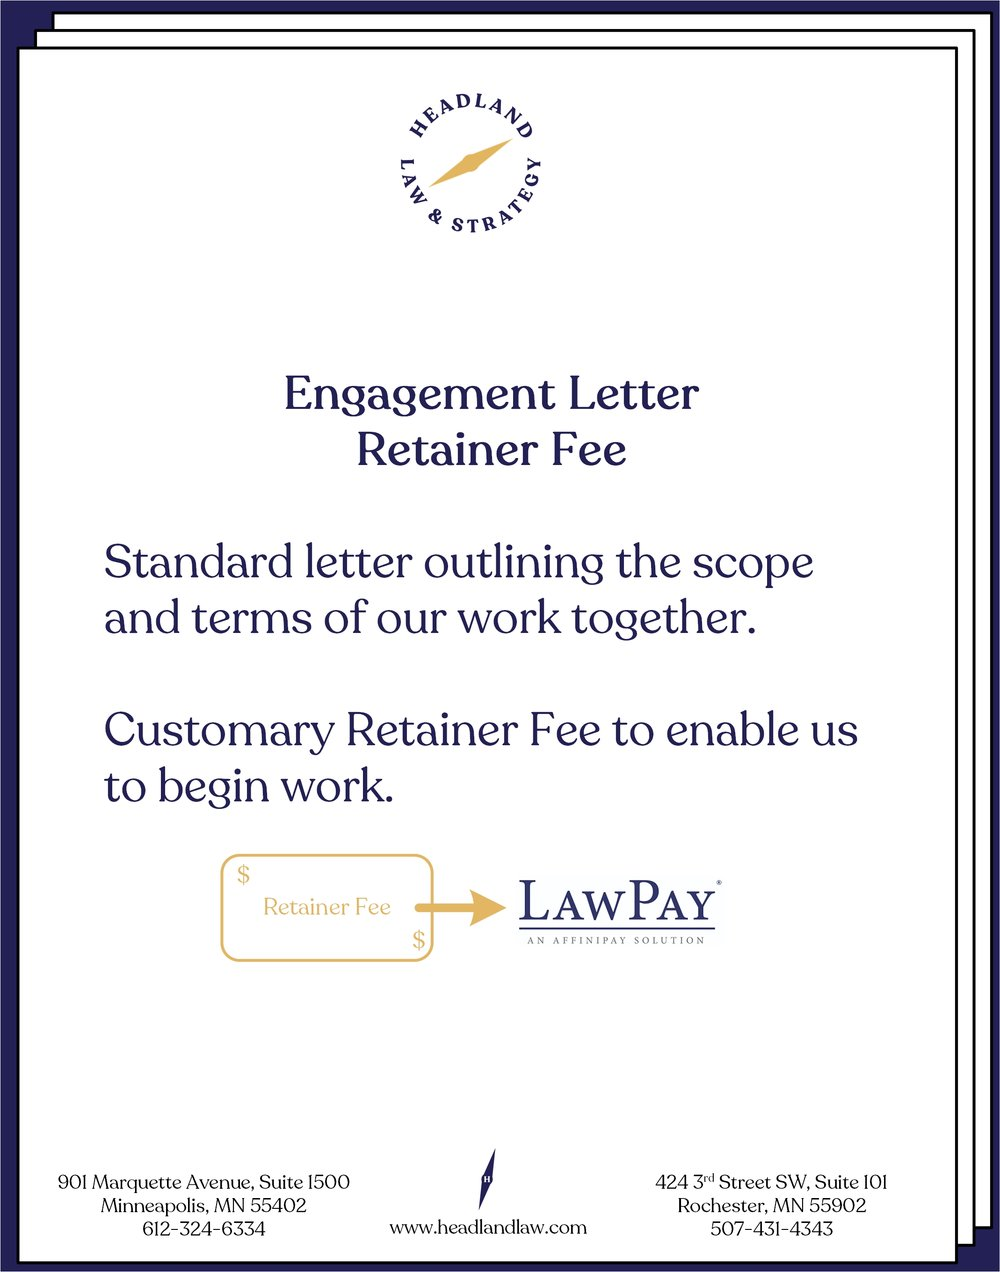 website - engagement letter, retainer.jpg